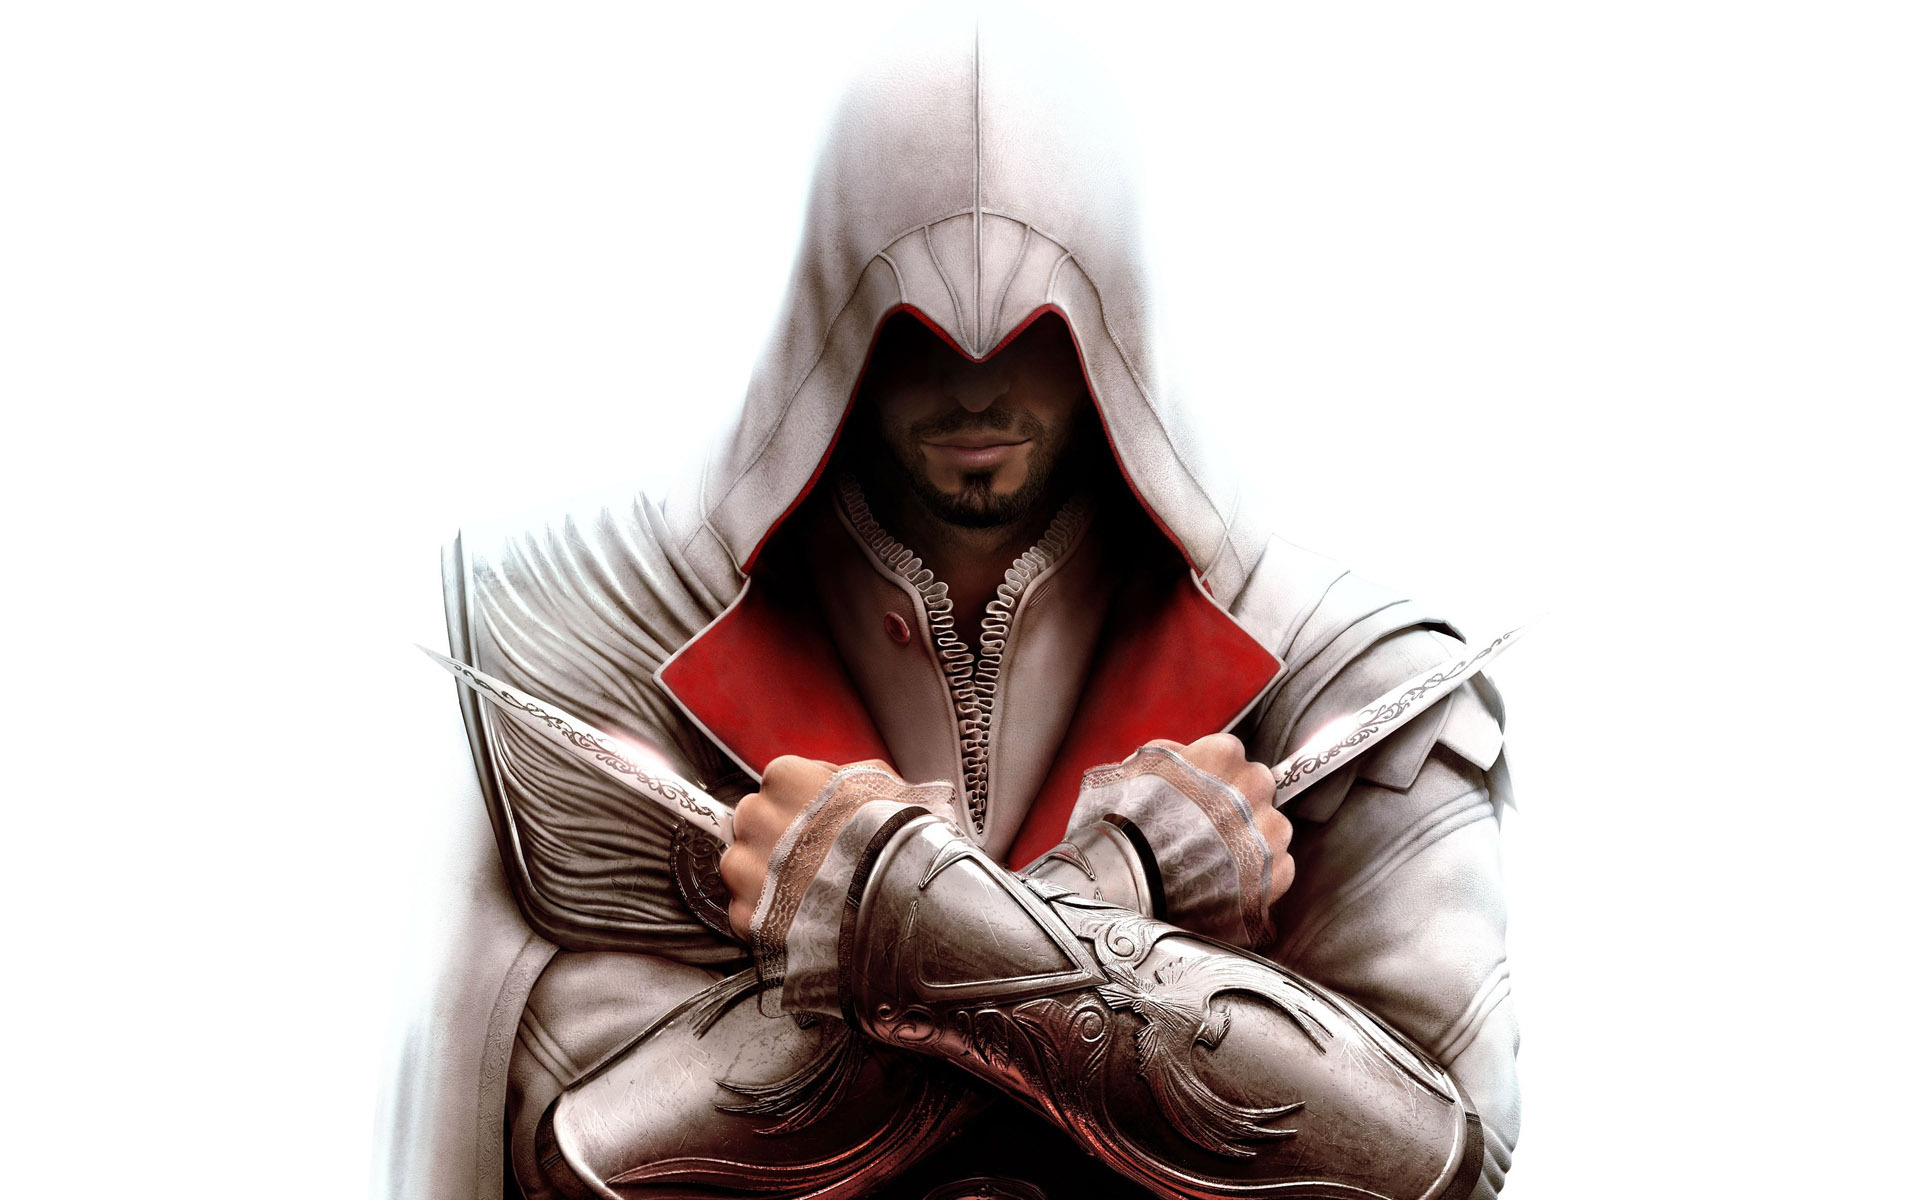 Free Download Ezio Assassins Creed Wallpaper 18695 1920x1200 For